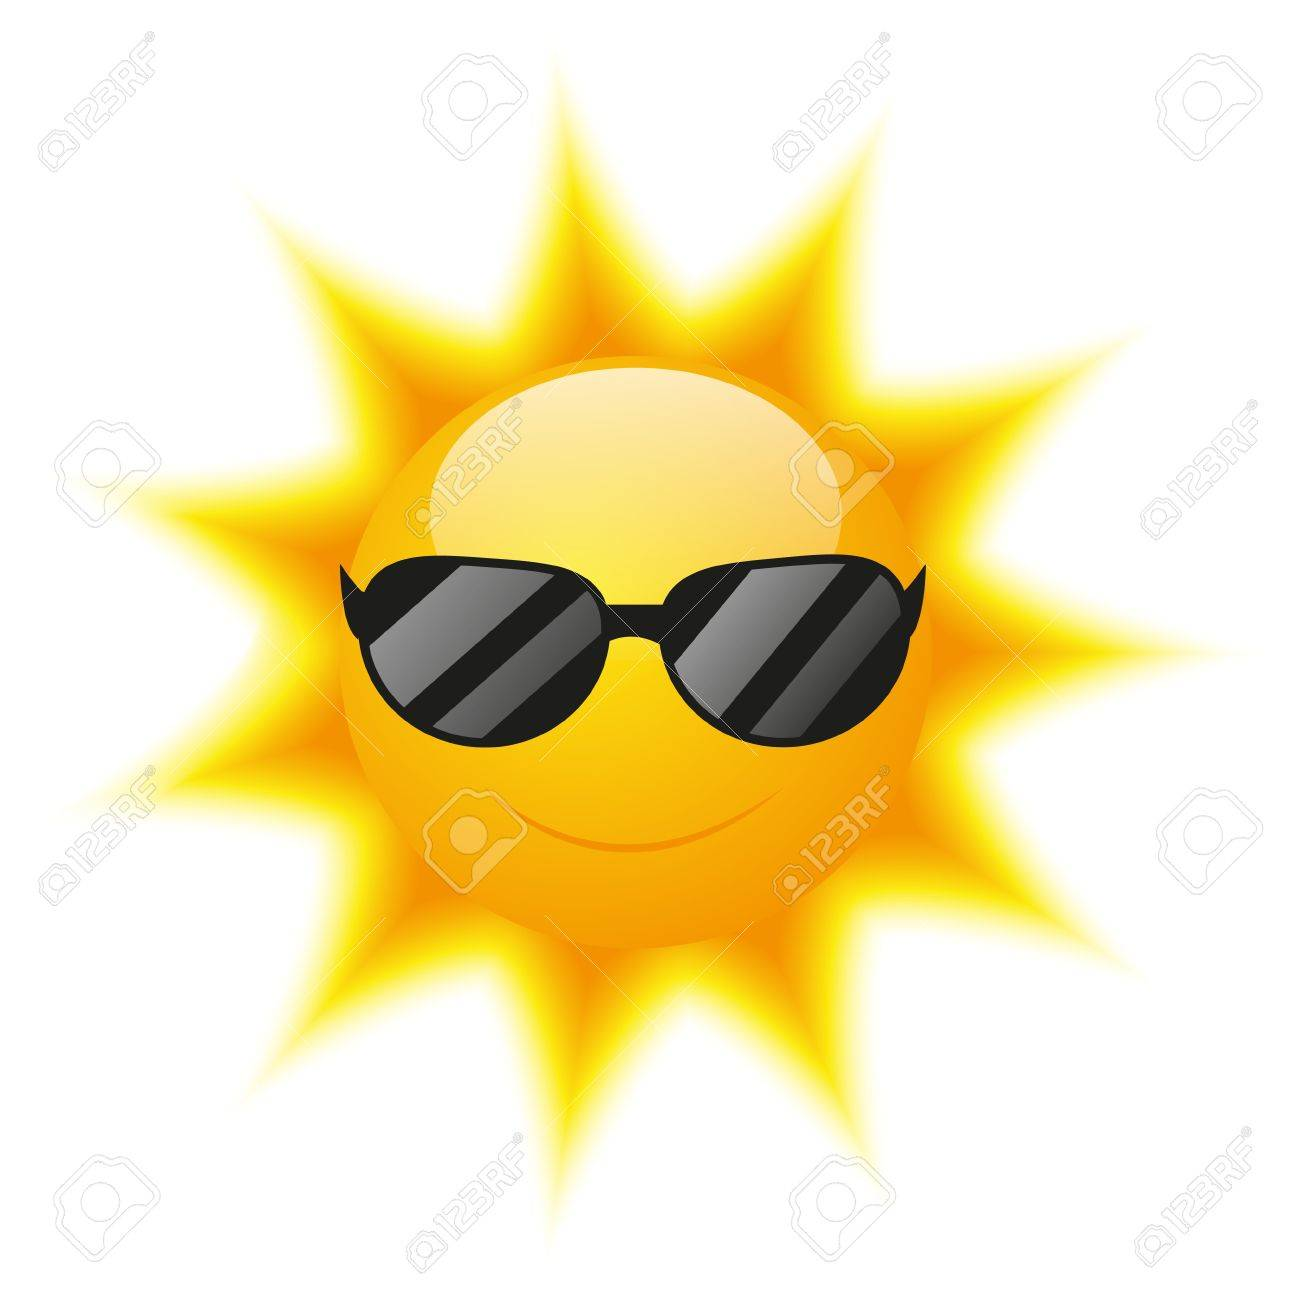 1300x1300 Cute Sun Character With Sunglasses Royalty Free Cliparts, Vectors